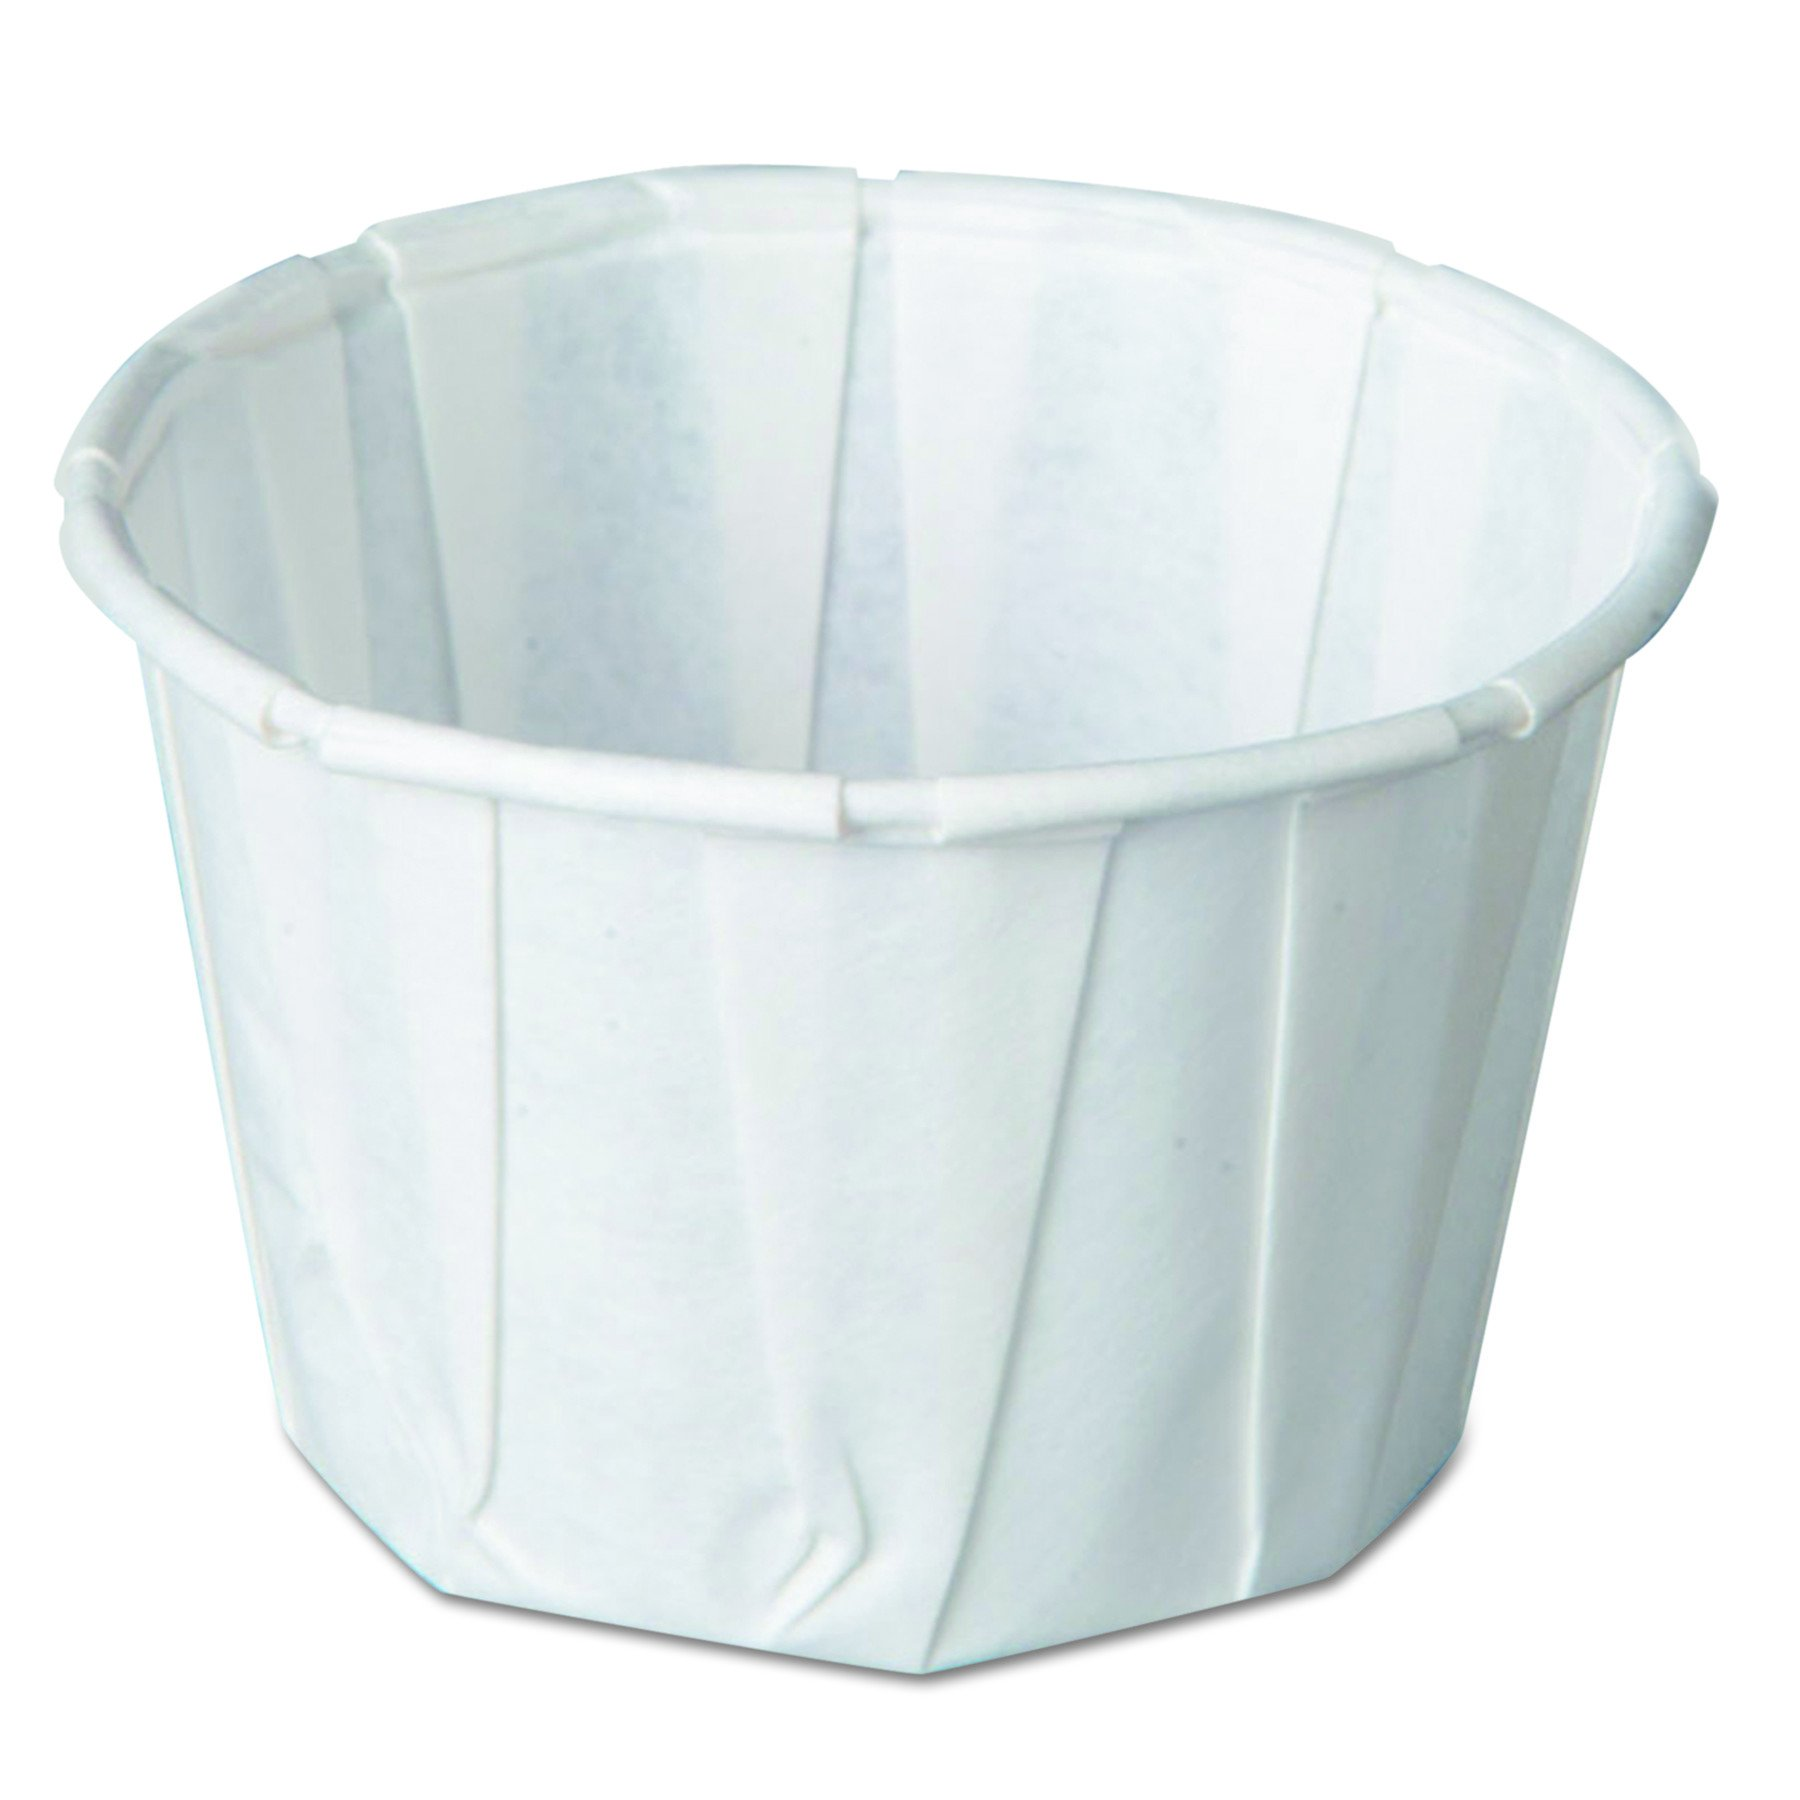 Genpak F200 2-Ounce Capacity 1-3/8-Inch Height White Color Pleated Paper Portion Cup 250-Pack (Case of 20) by Genpak